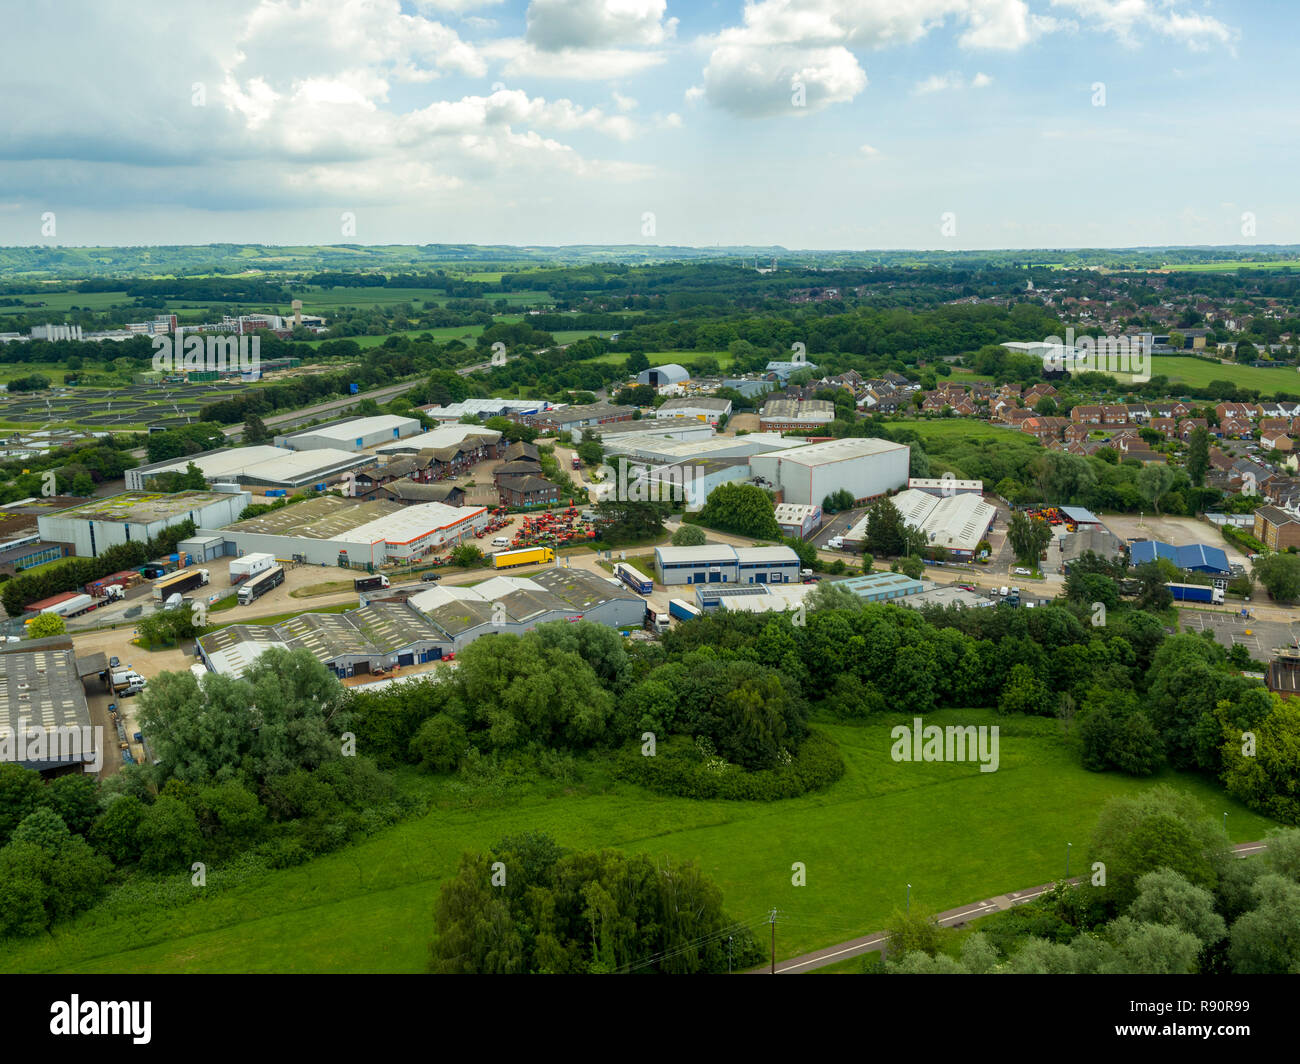 Aerial view of Henwood industrial estate, Ashford, Kent, UK Stock Photo